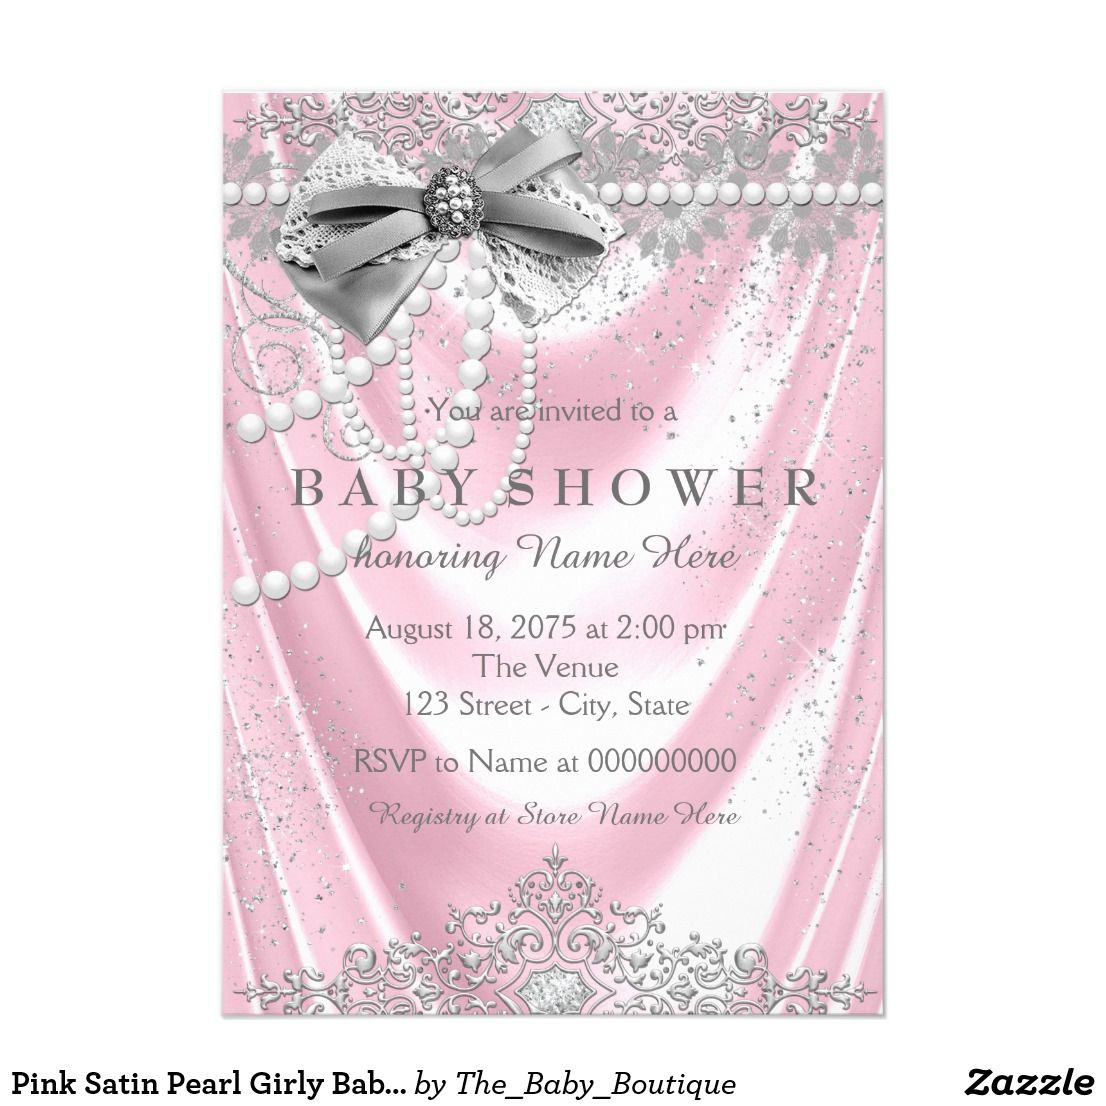 Pink Satin Pearl Girly Baby Shower Card | Baby Shower | Pinterest